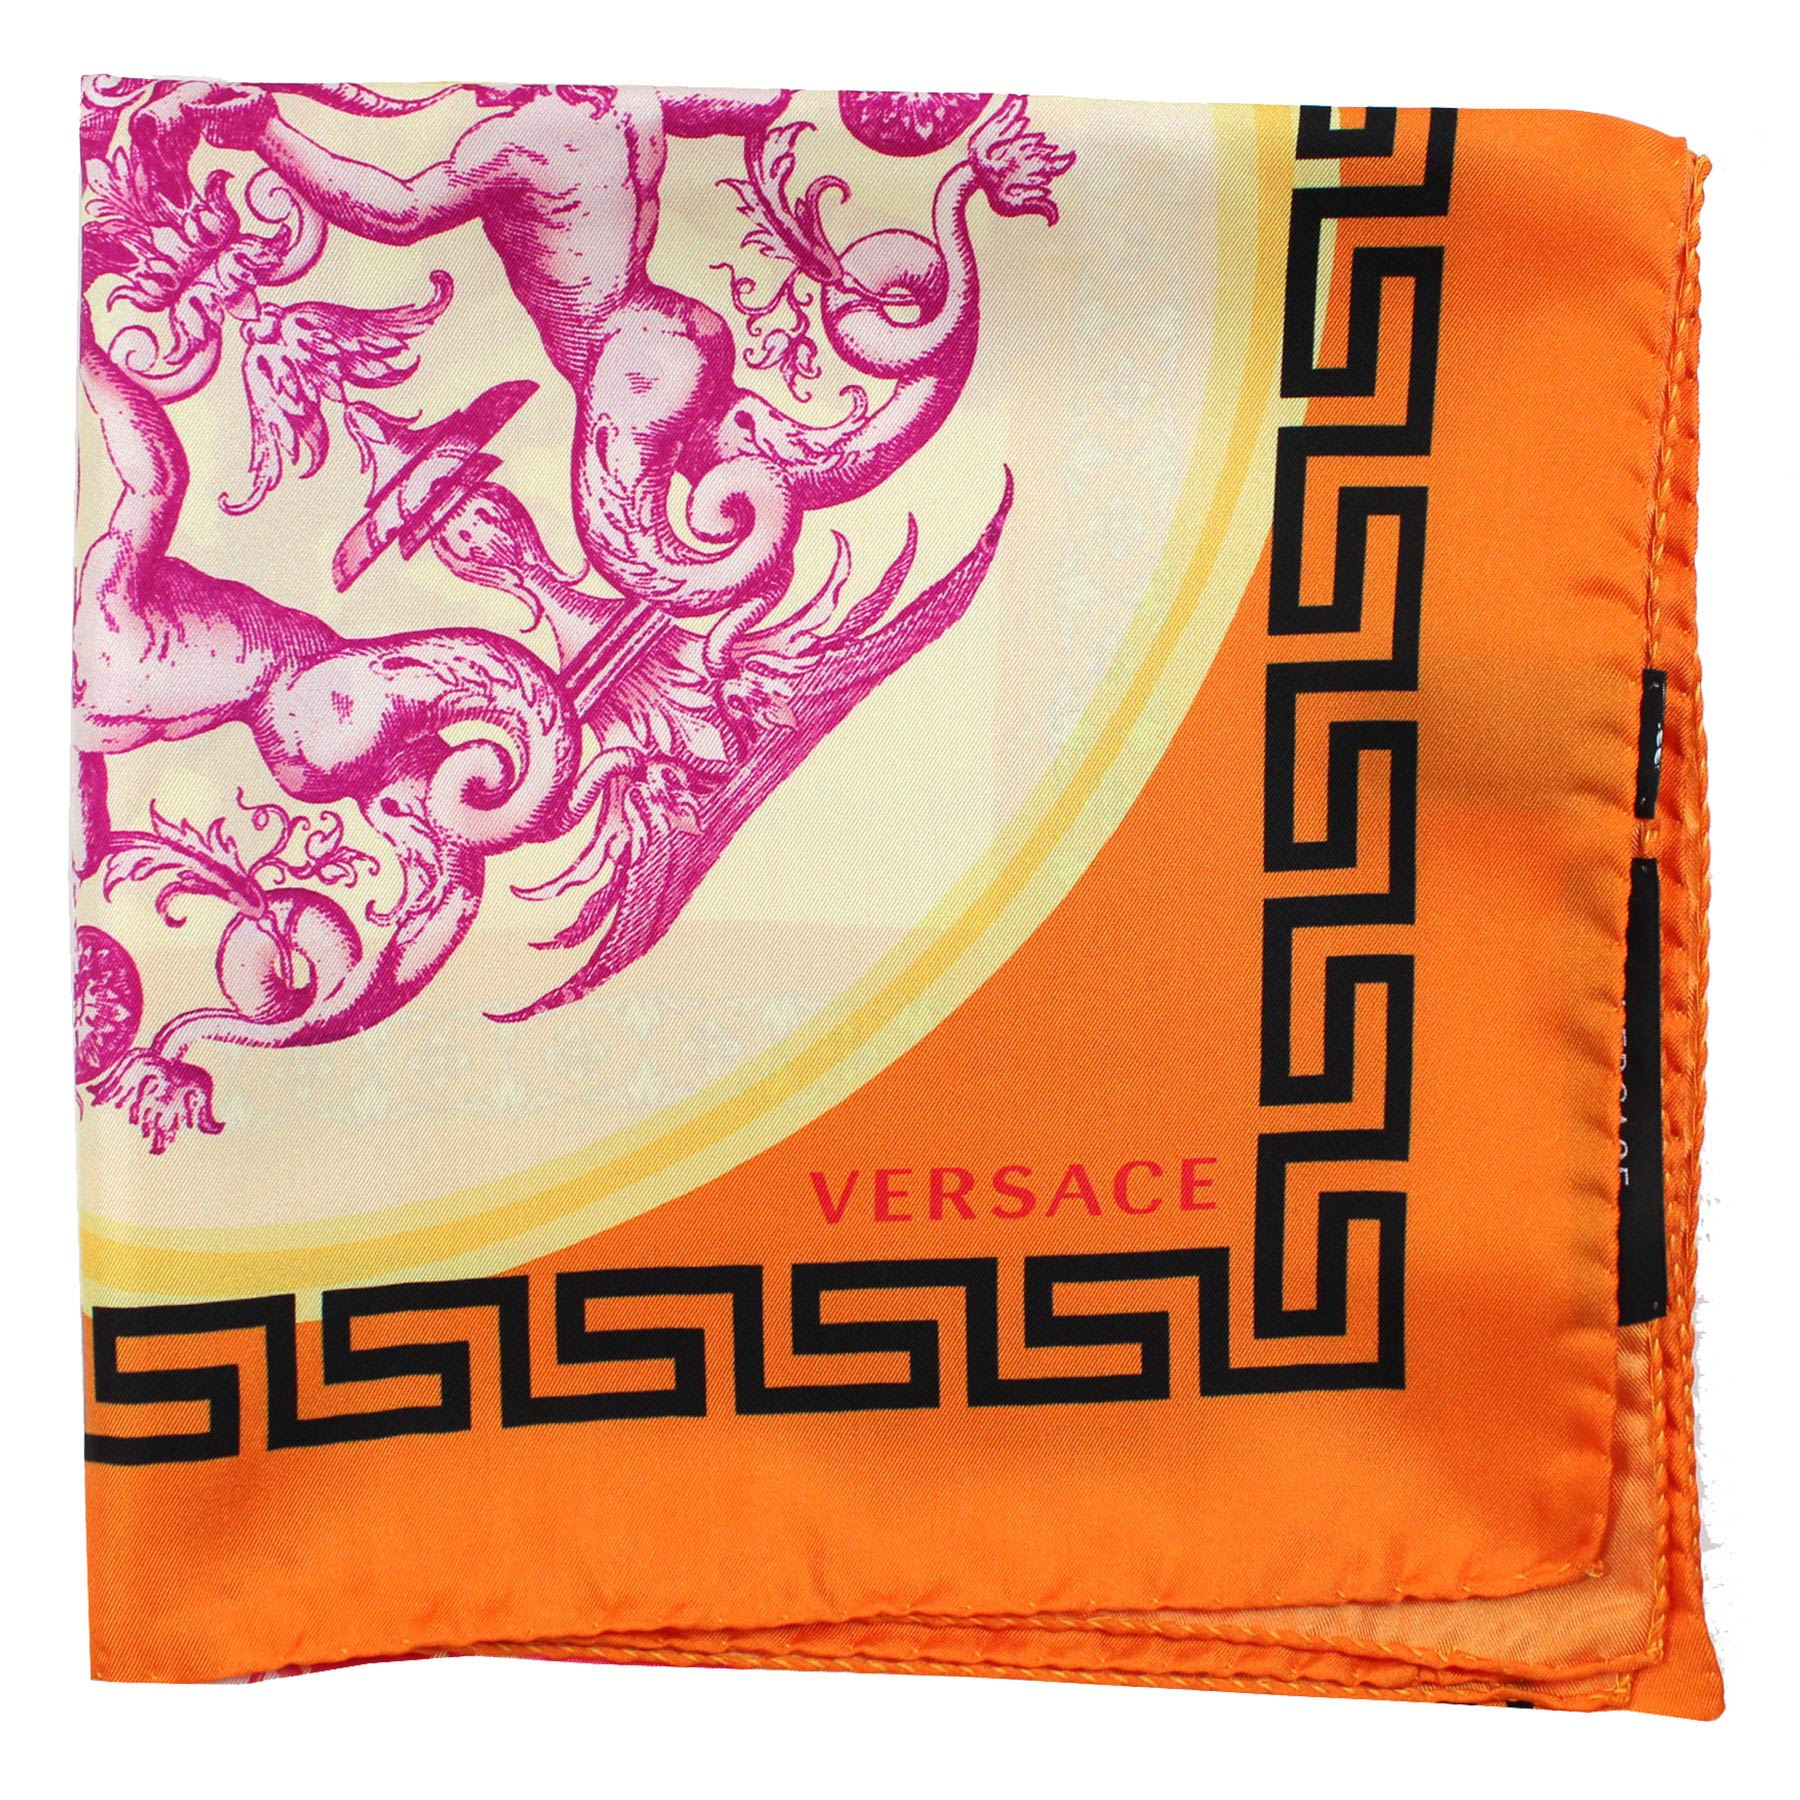 Versace Scarf Orange Fish & Greek Knit - Large Twill Silk Square Scarf SALE